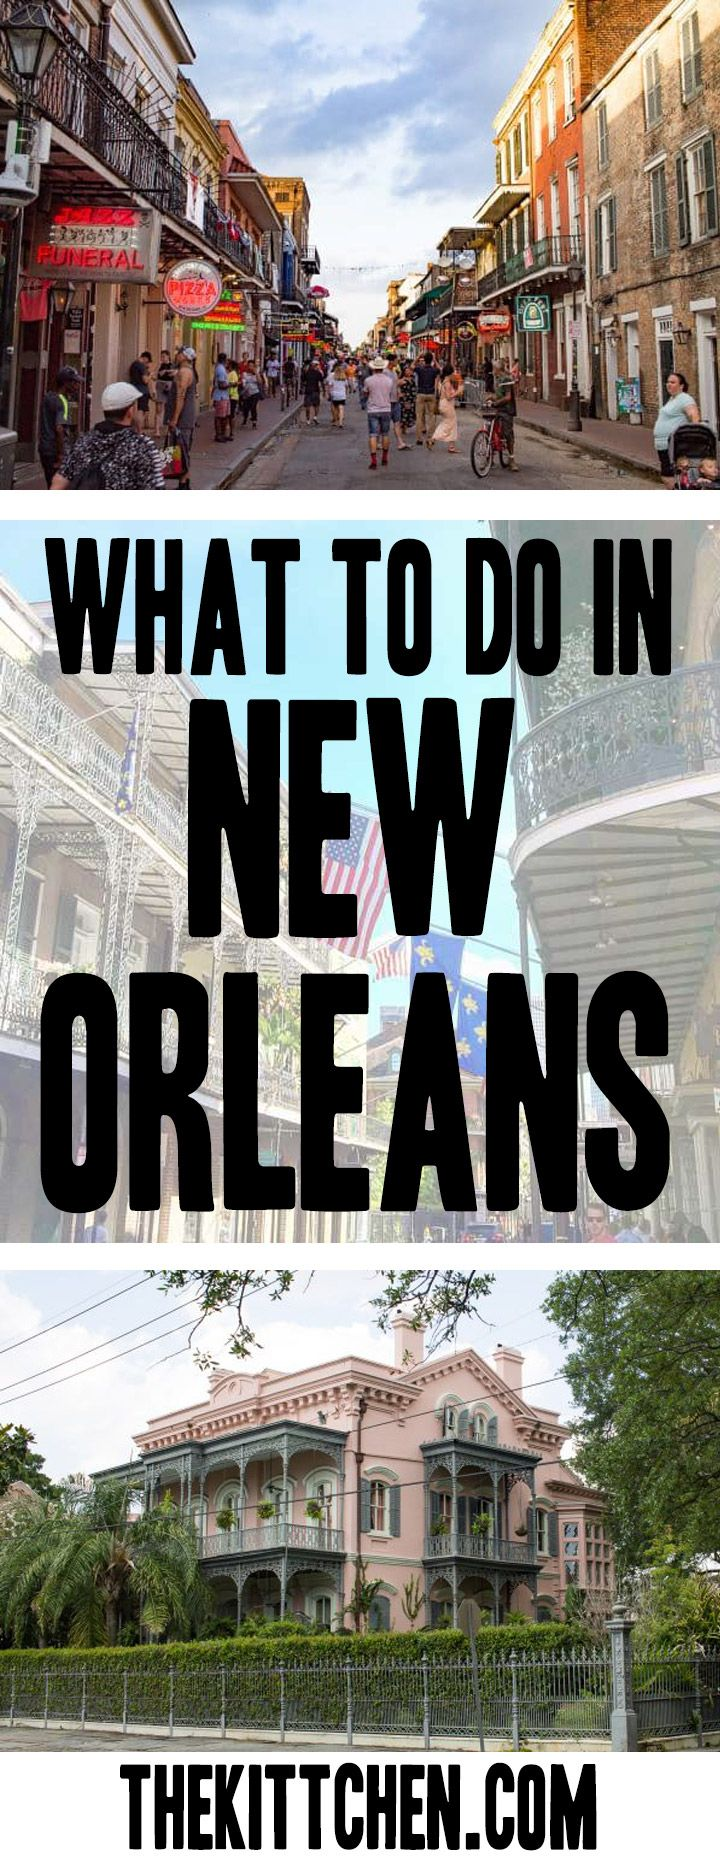 Plan the perfect itinerary for your trip to New Orleans! ***************************************** USA travel | USA destinations | Things to do in New Orleans | New Orleans food | New Orleans French Quarter | What to do in New Orleans | New Orleans bucket list | New Orelans buildings | United States travel